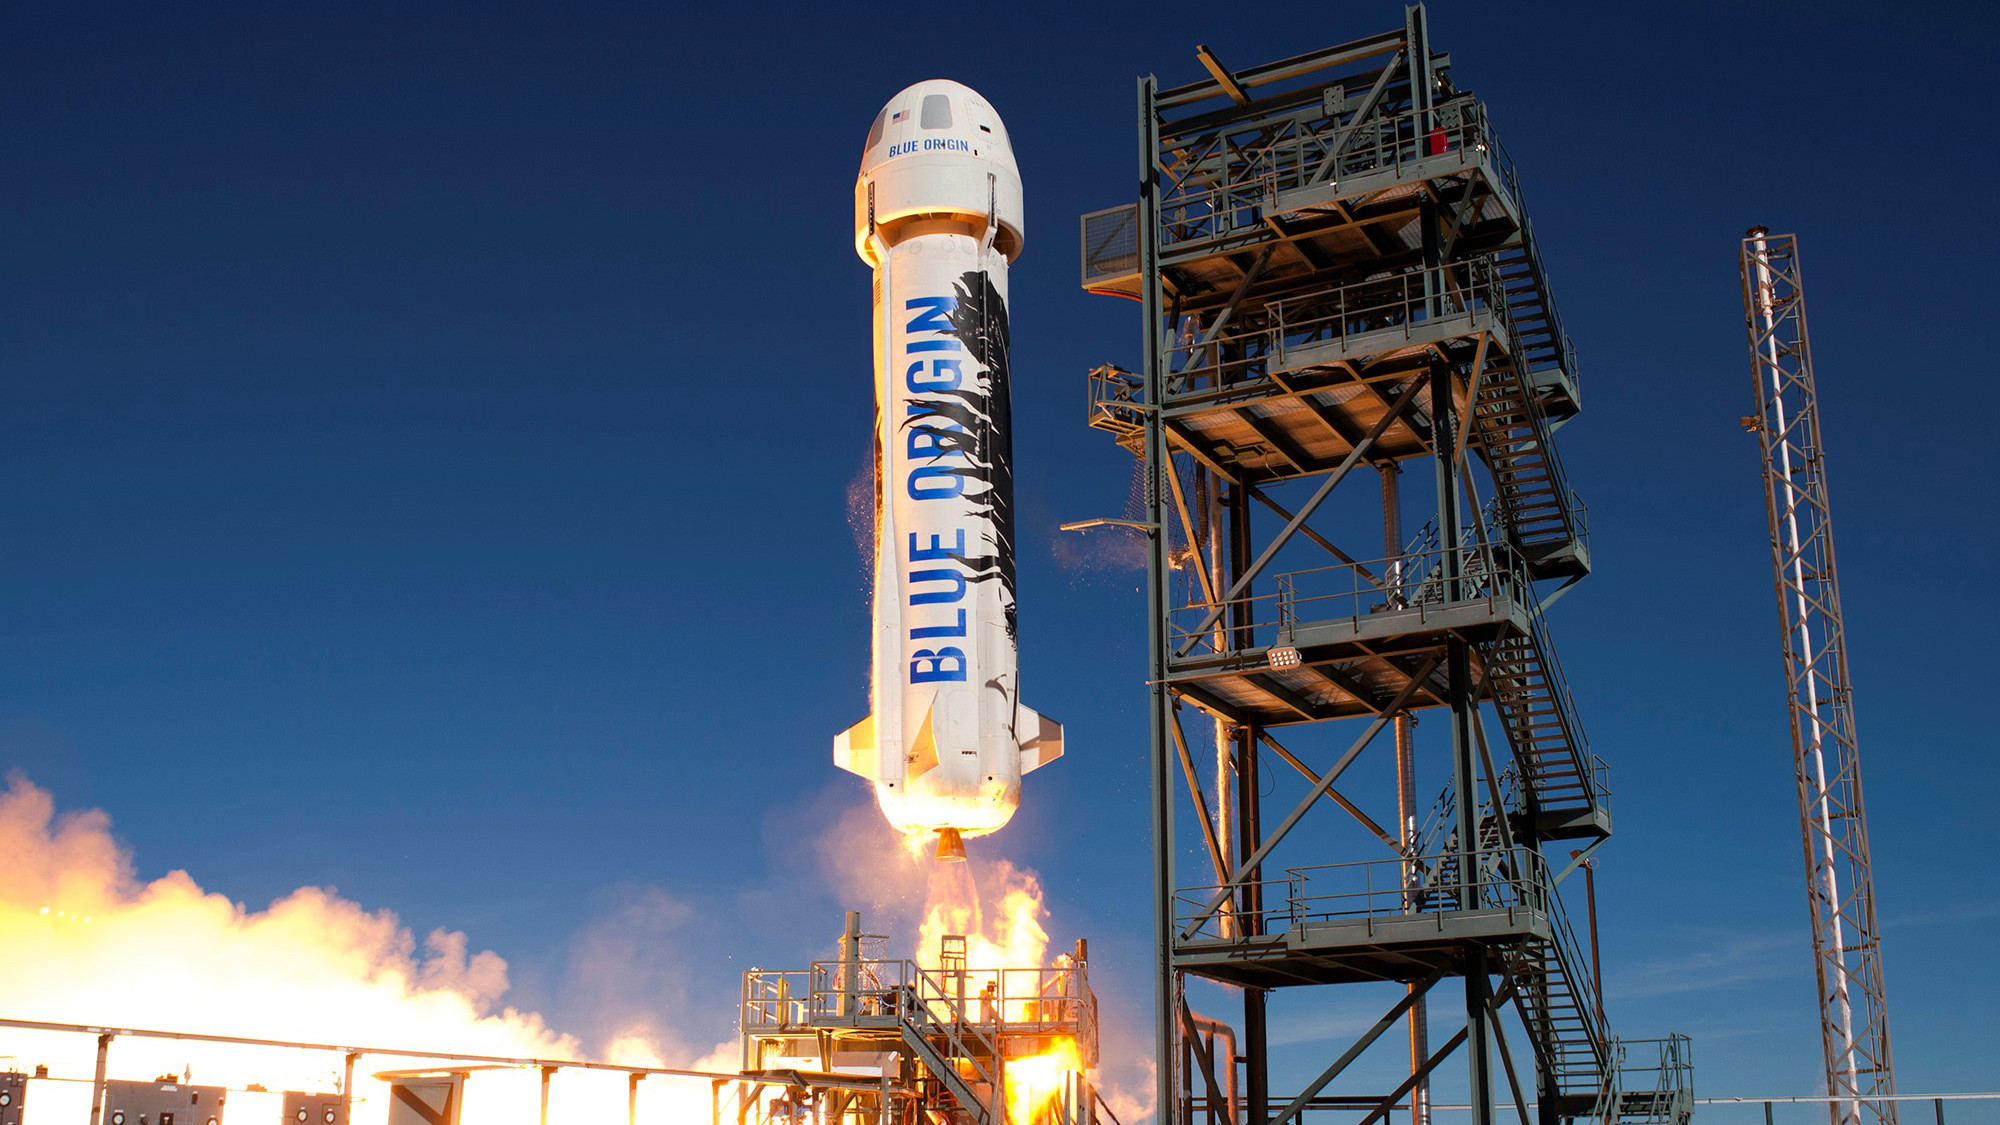 Blue Origin's New Shepard spacecraft launches in 2016.